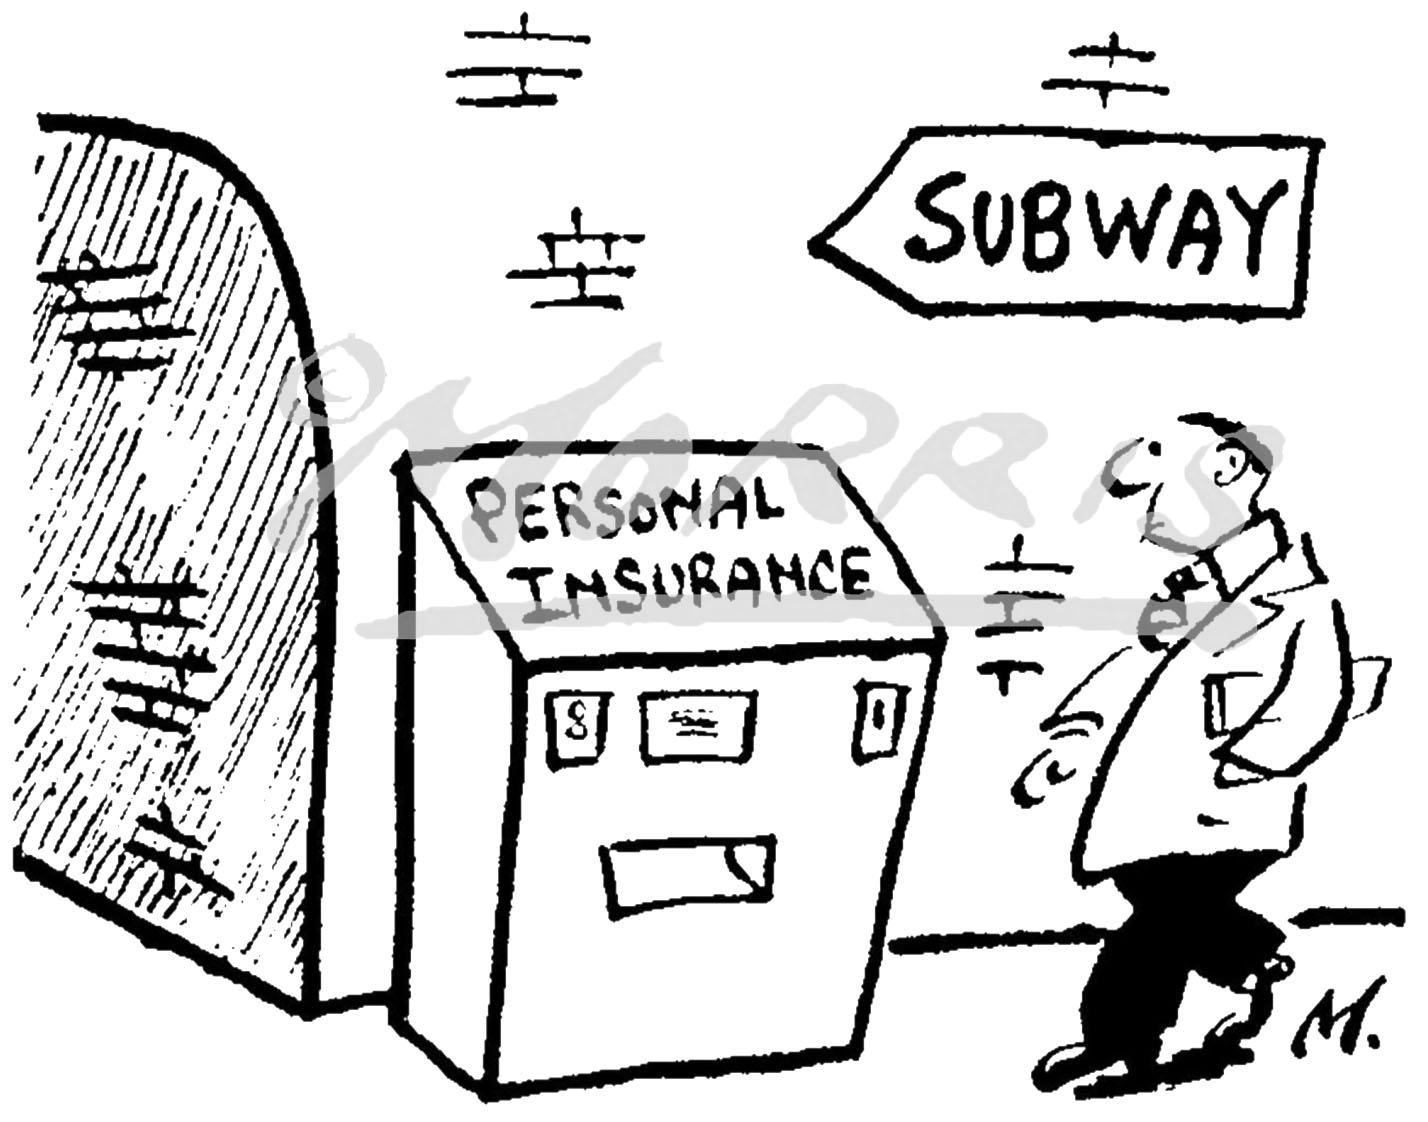 Personal insurance cartoon, Financial cartoon, Investment cartoon – Ref: 0321bw